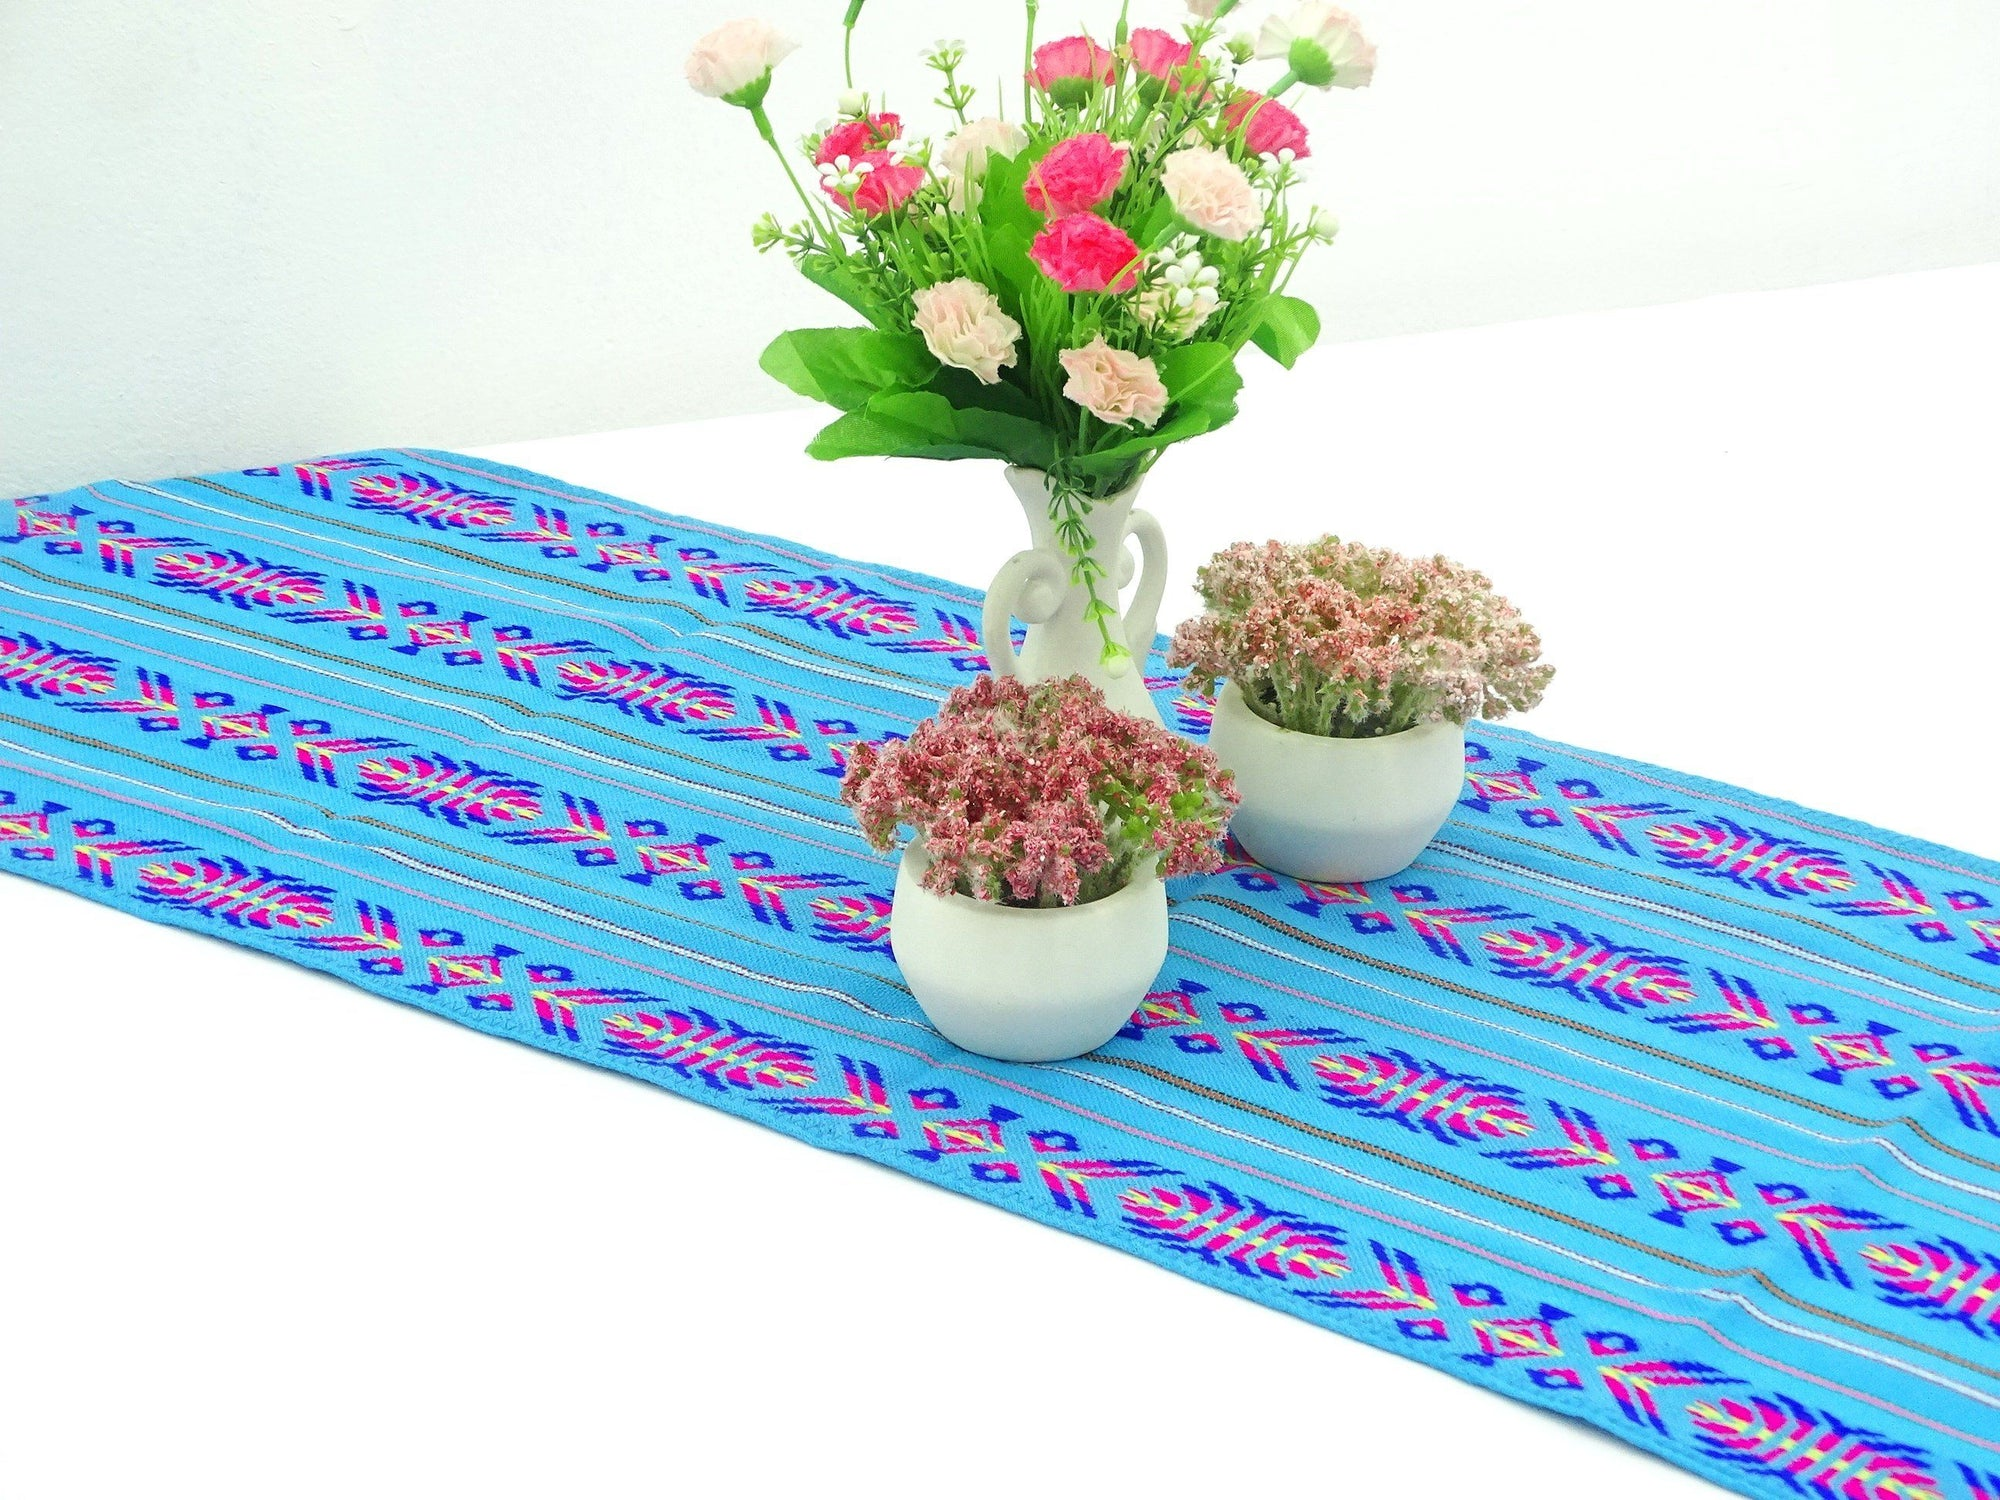 Delicieux Mexican Table Runner   Mexican Table Runner, Turquoise Table Runner 14x72  Inches, Fiesta Decoration